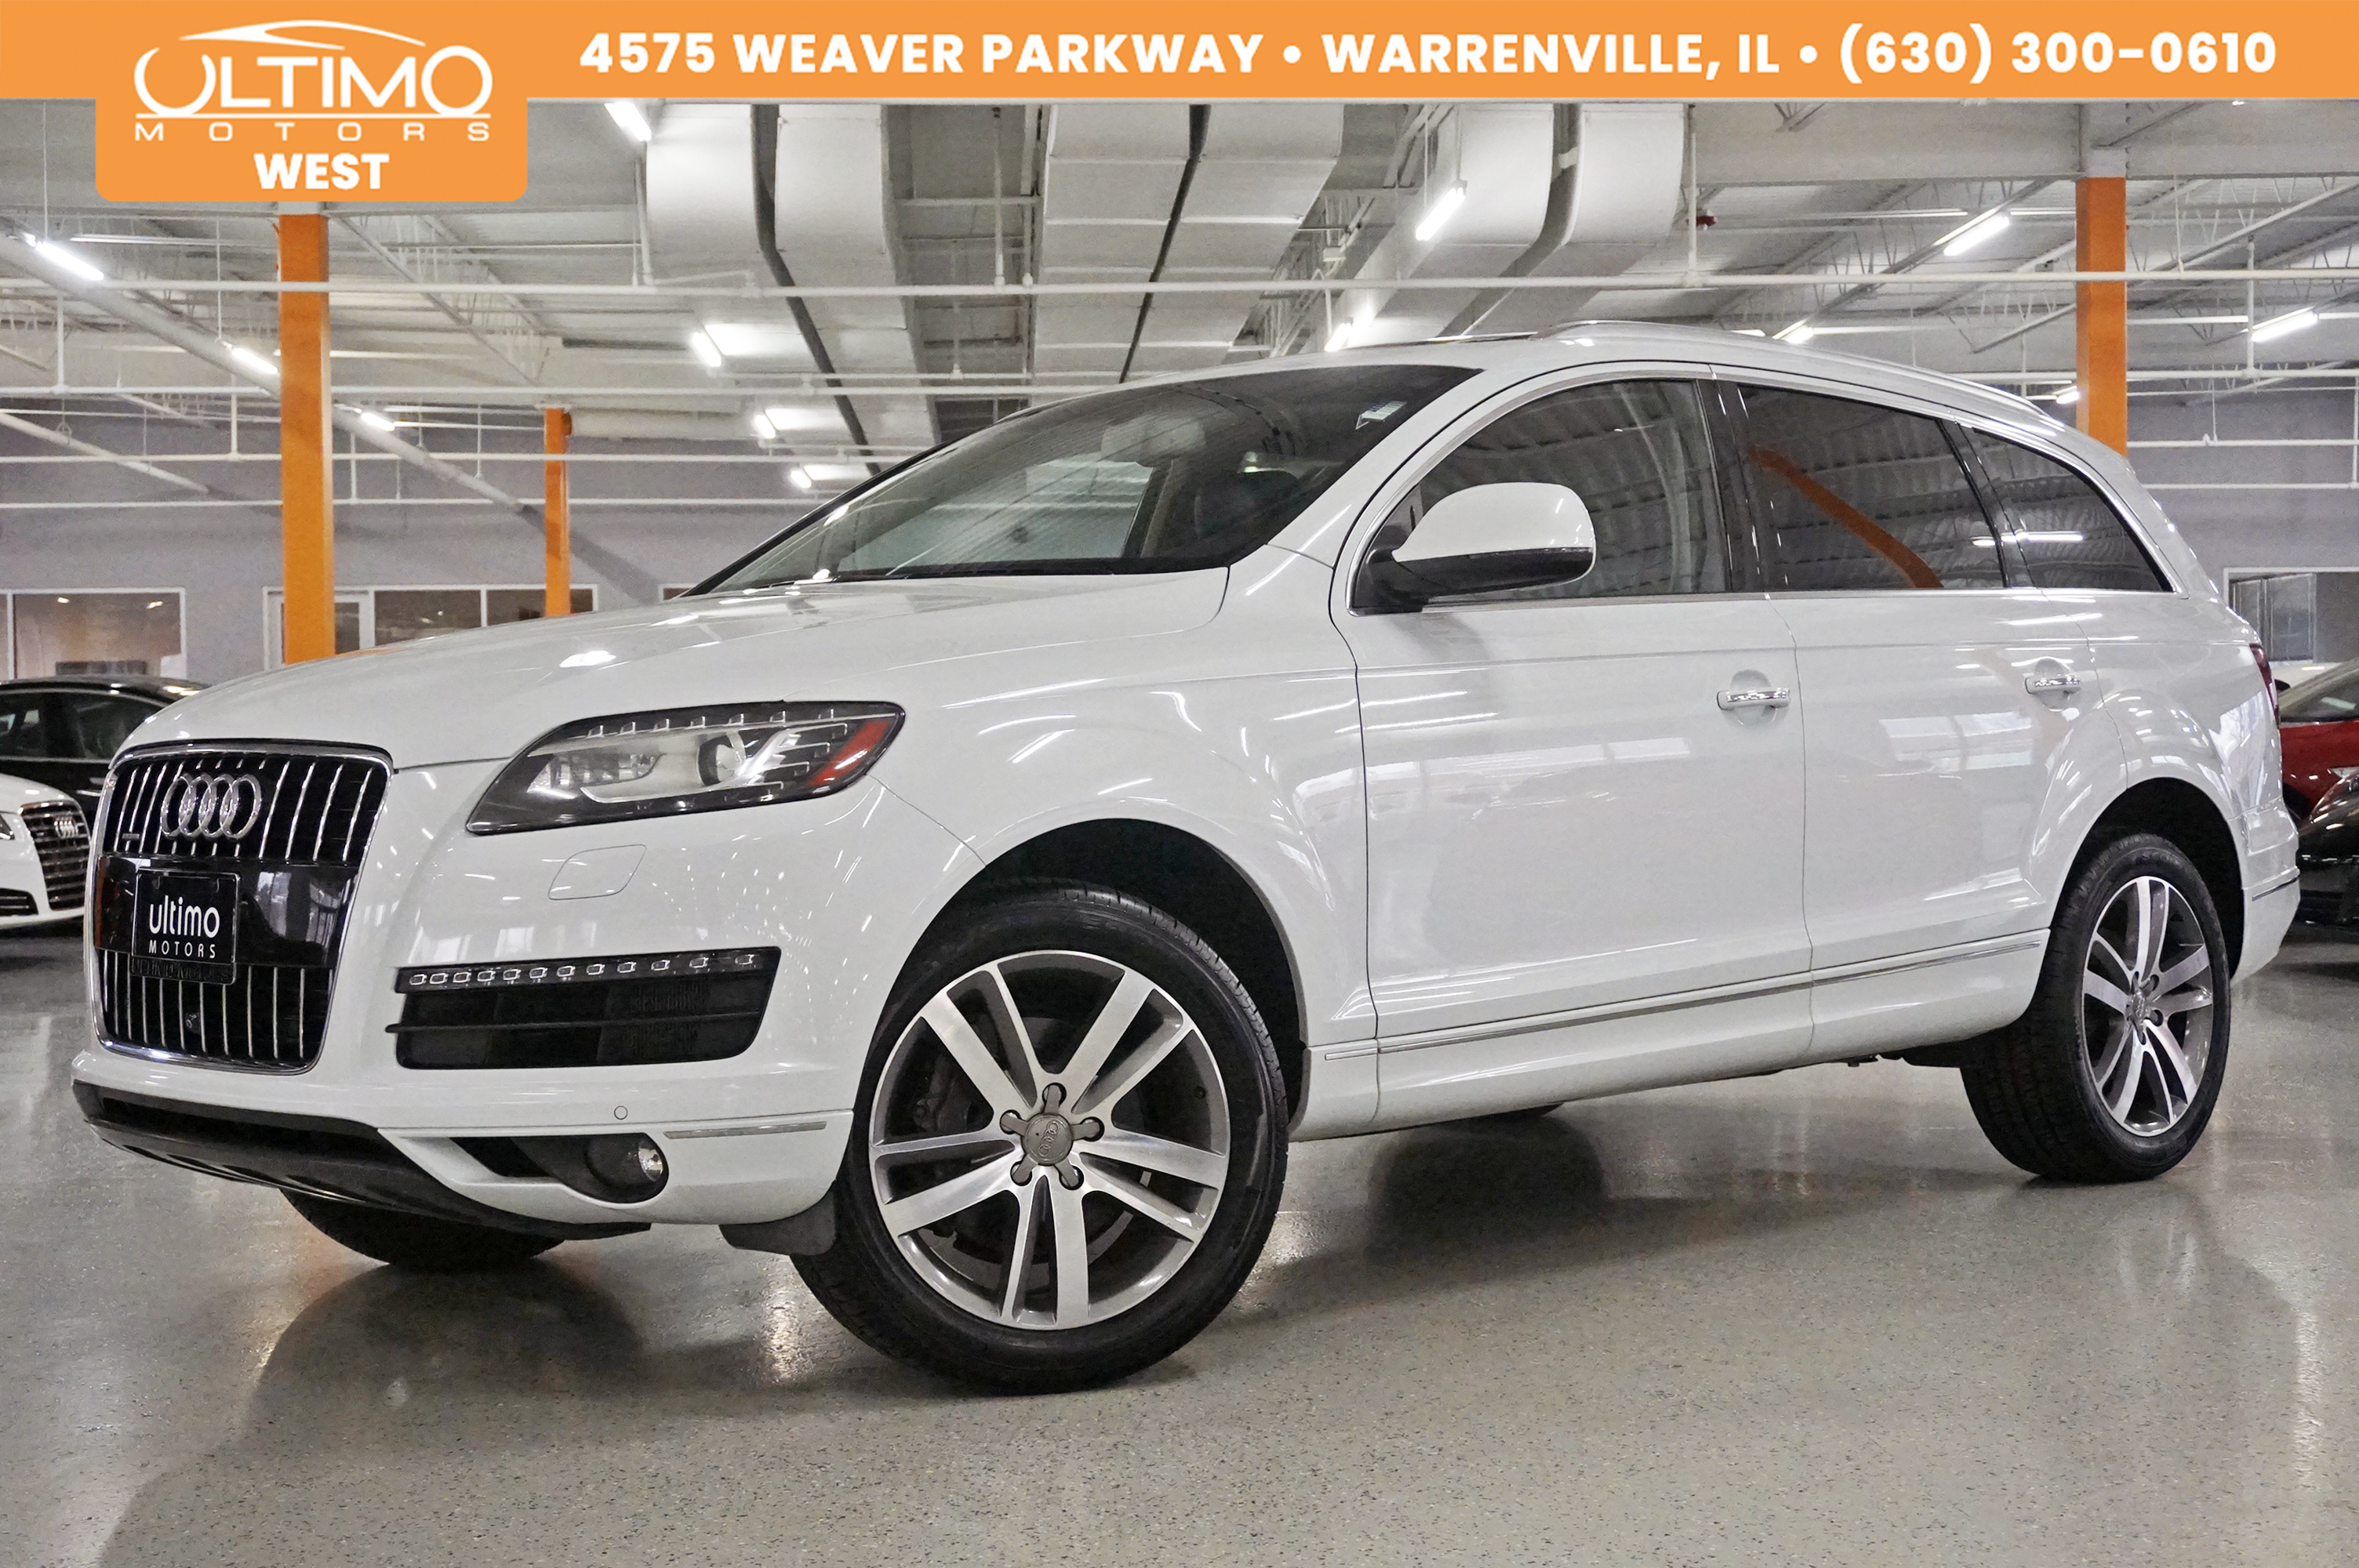 Pre-Owned 2013 Audi Q7 3.0T Premium Plus, Technology, Warm Weather Pkg, Adaptive Cruise